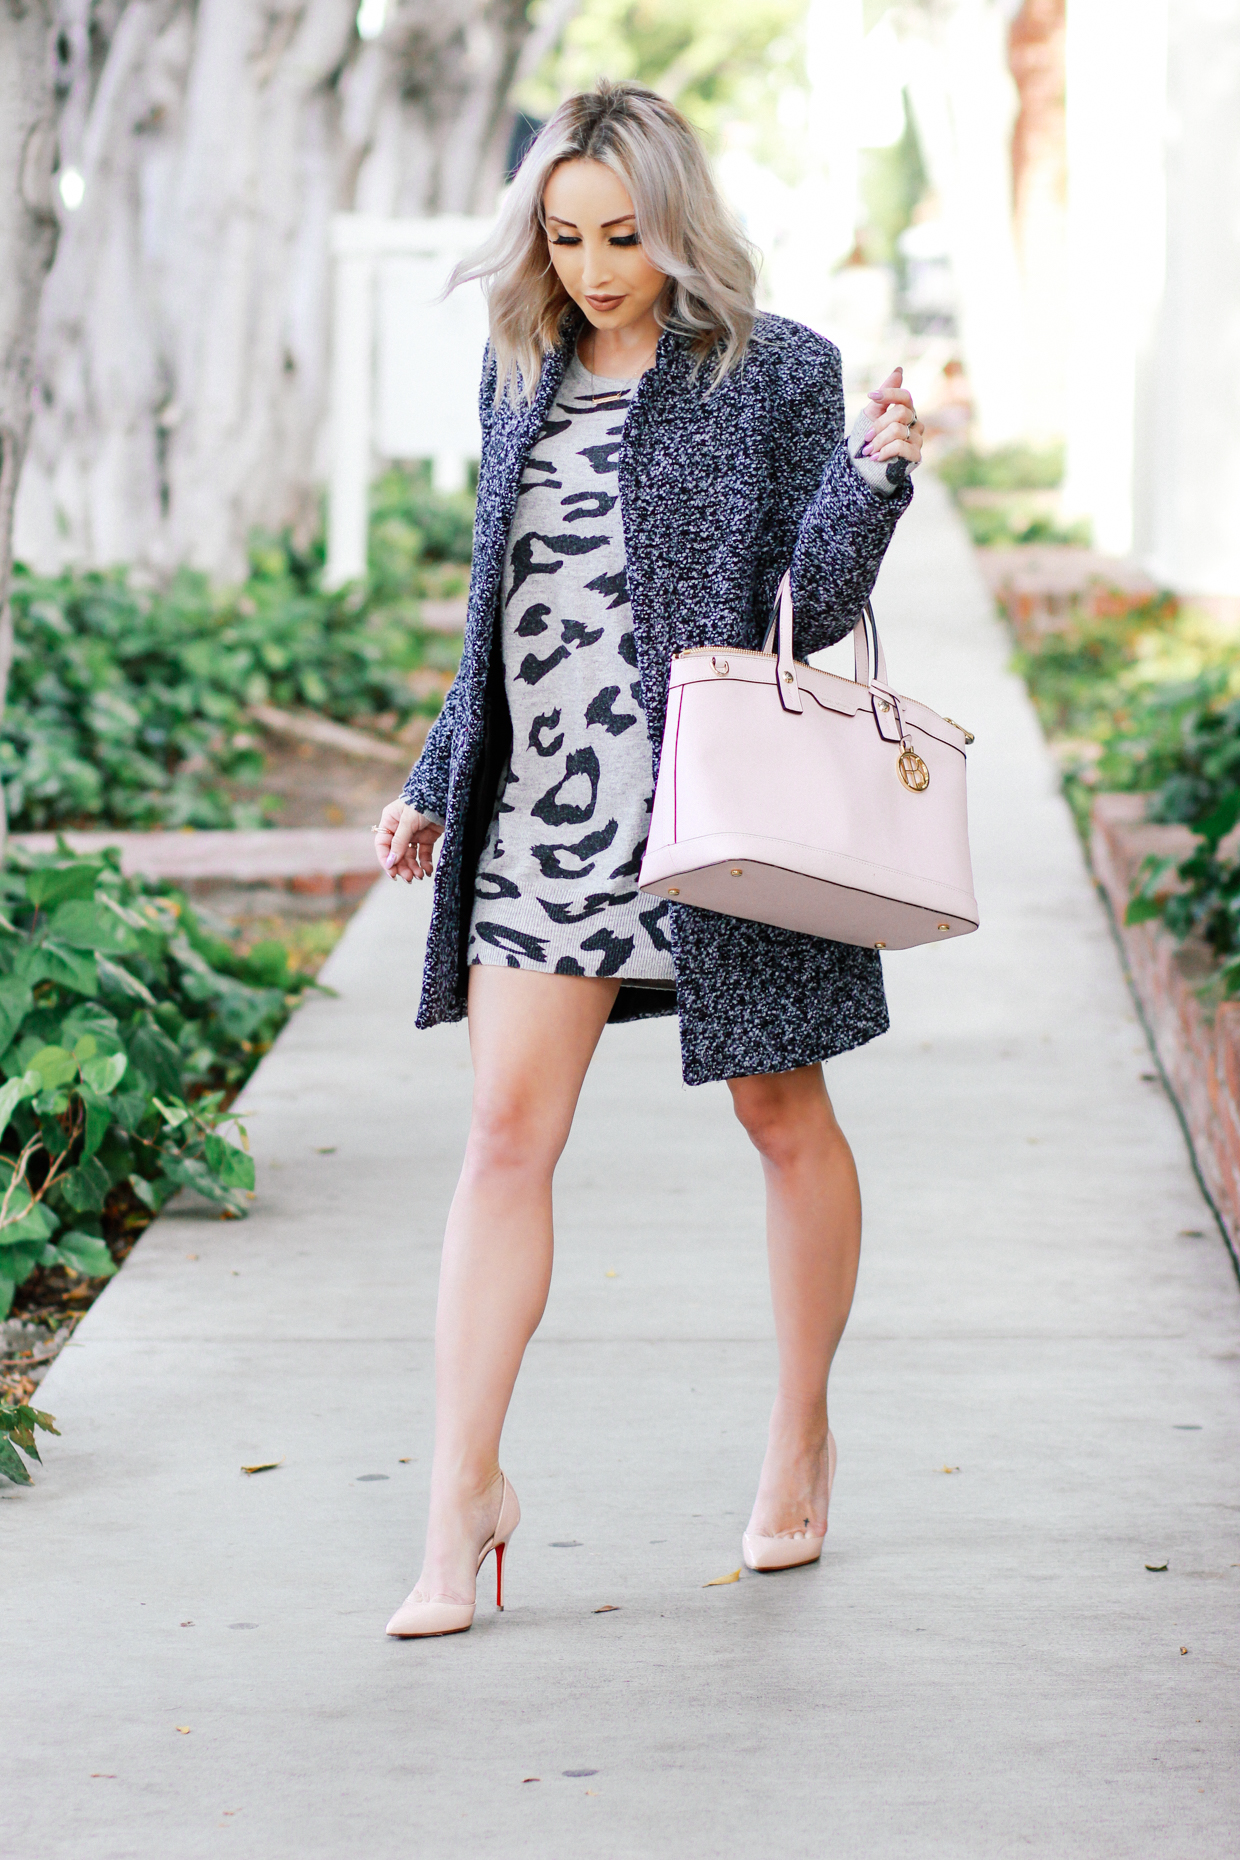 Blondie in the City | Grey Sweater Dress, Grey Coat, Pink @henribendel Bag